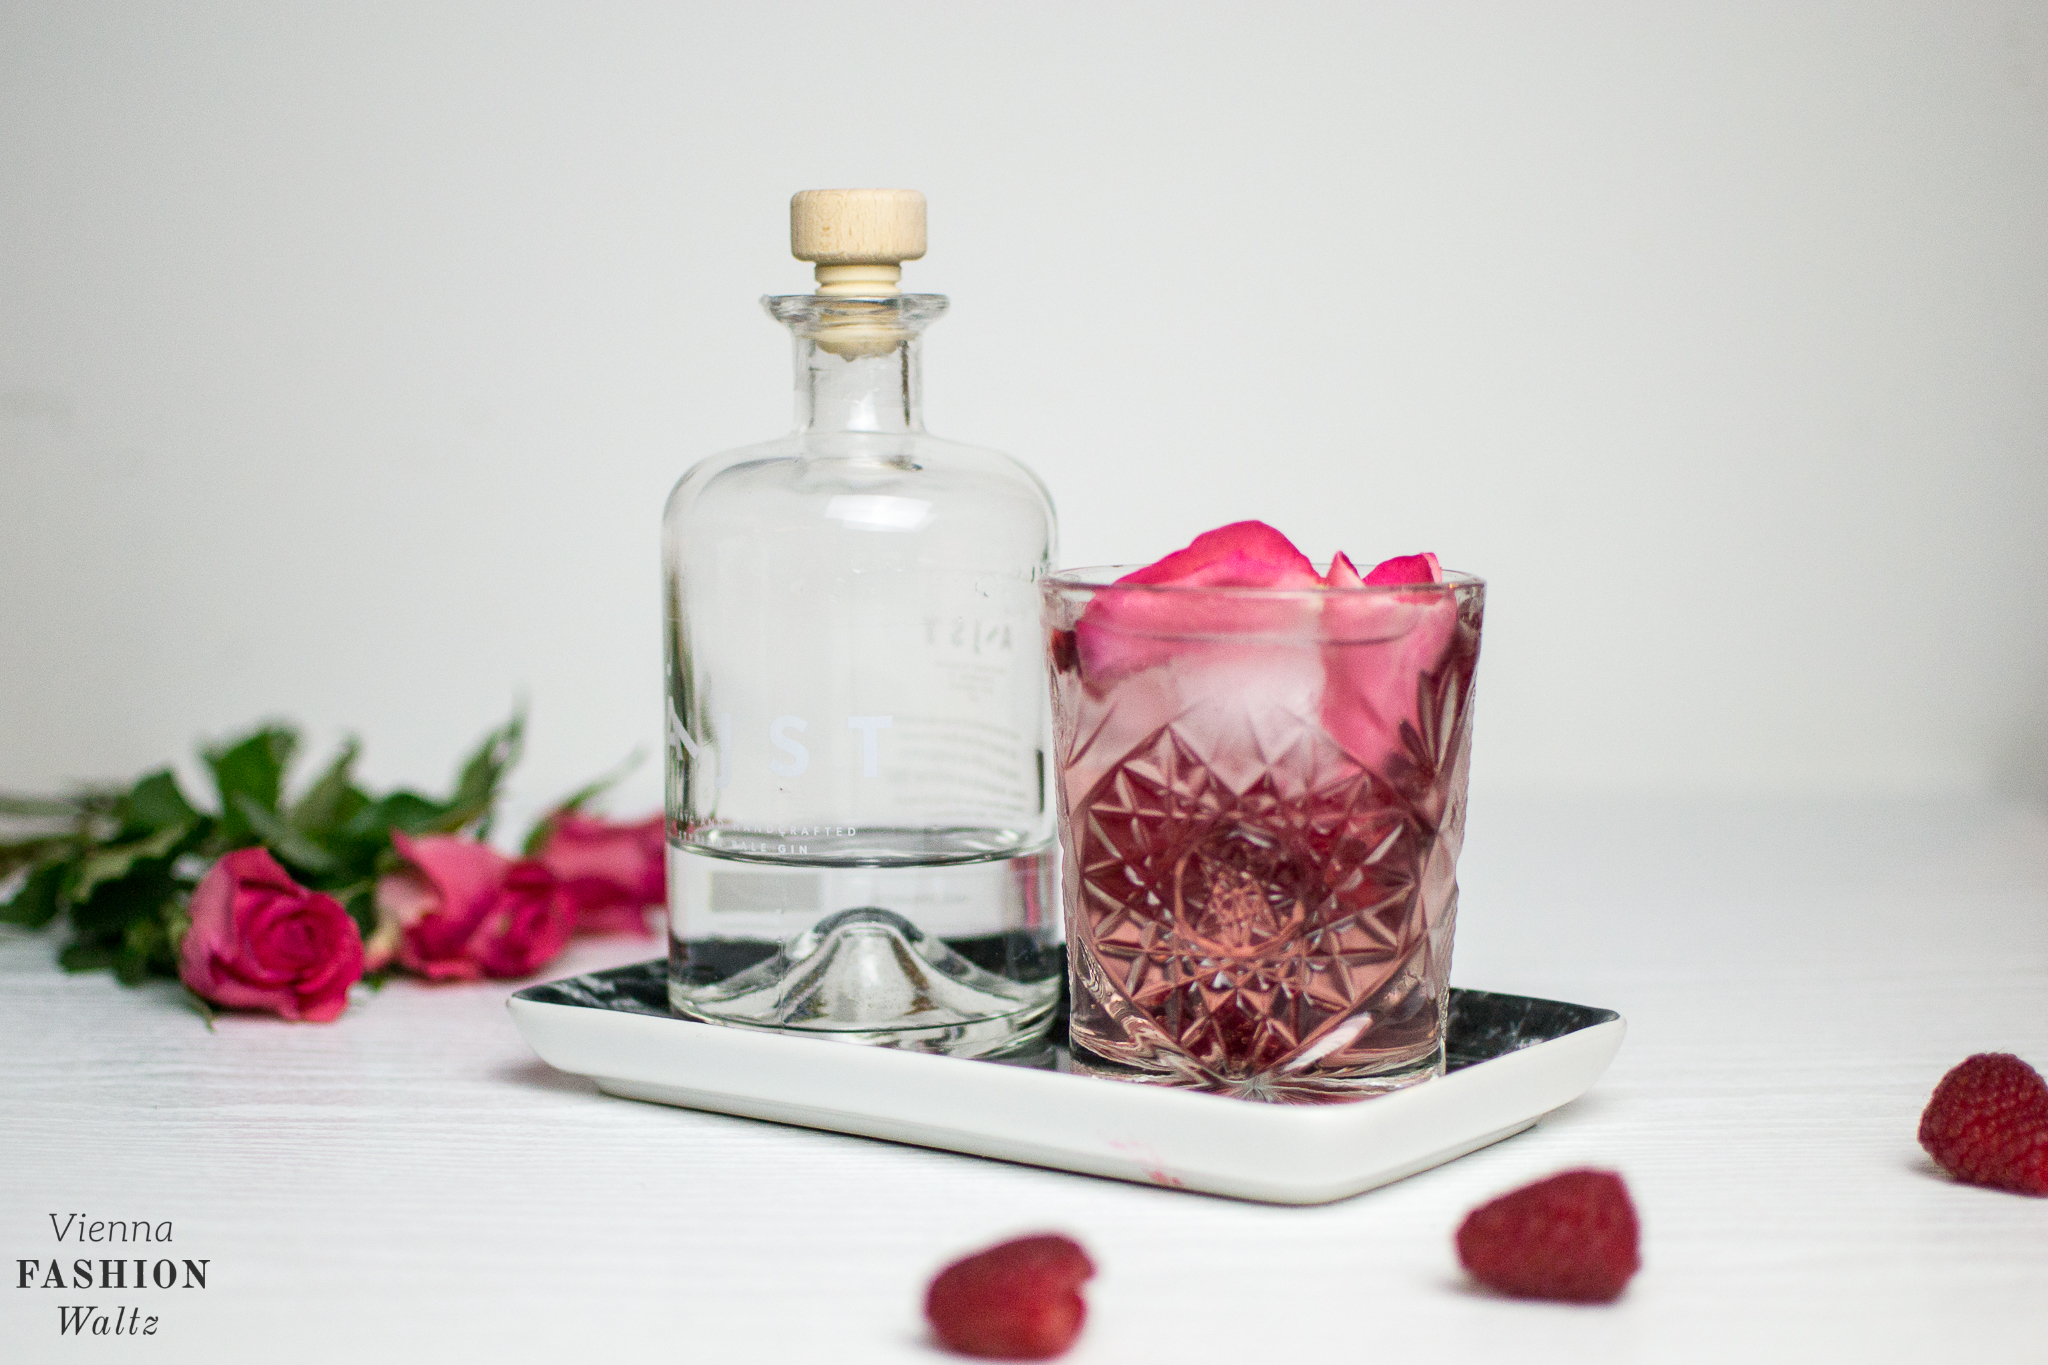 Raspberry Rose Aeijst Gin and Tonic Food Fashion Lifestyle Blog Wien Austria Österreich www.viennafashionwaltz.com Valentins Day